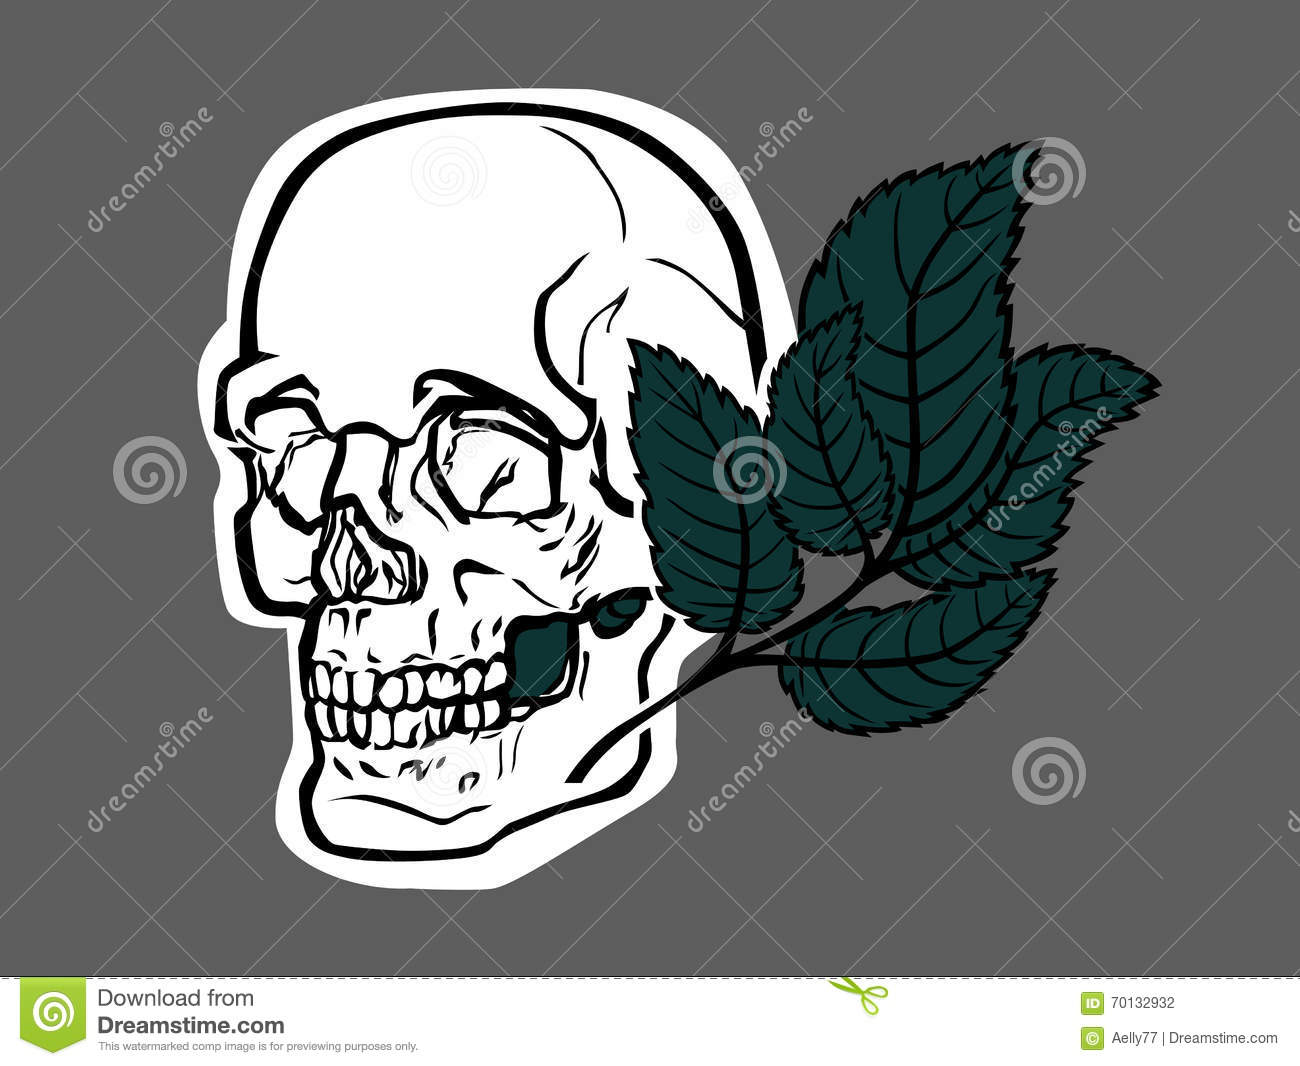 Skull and green leave.